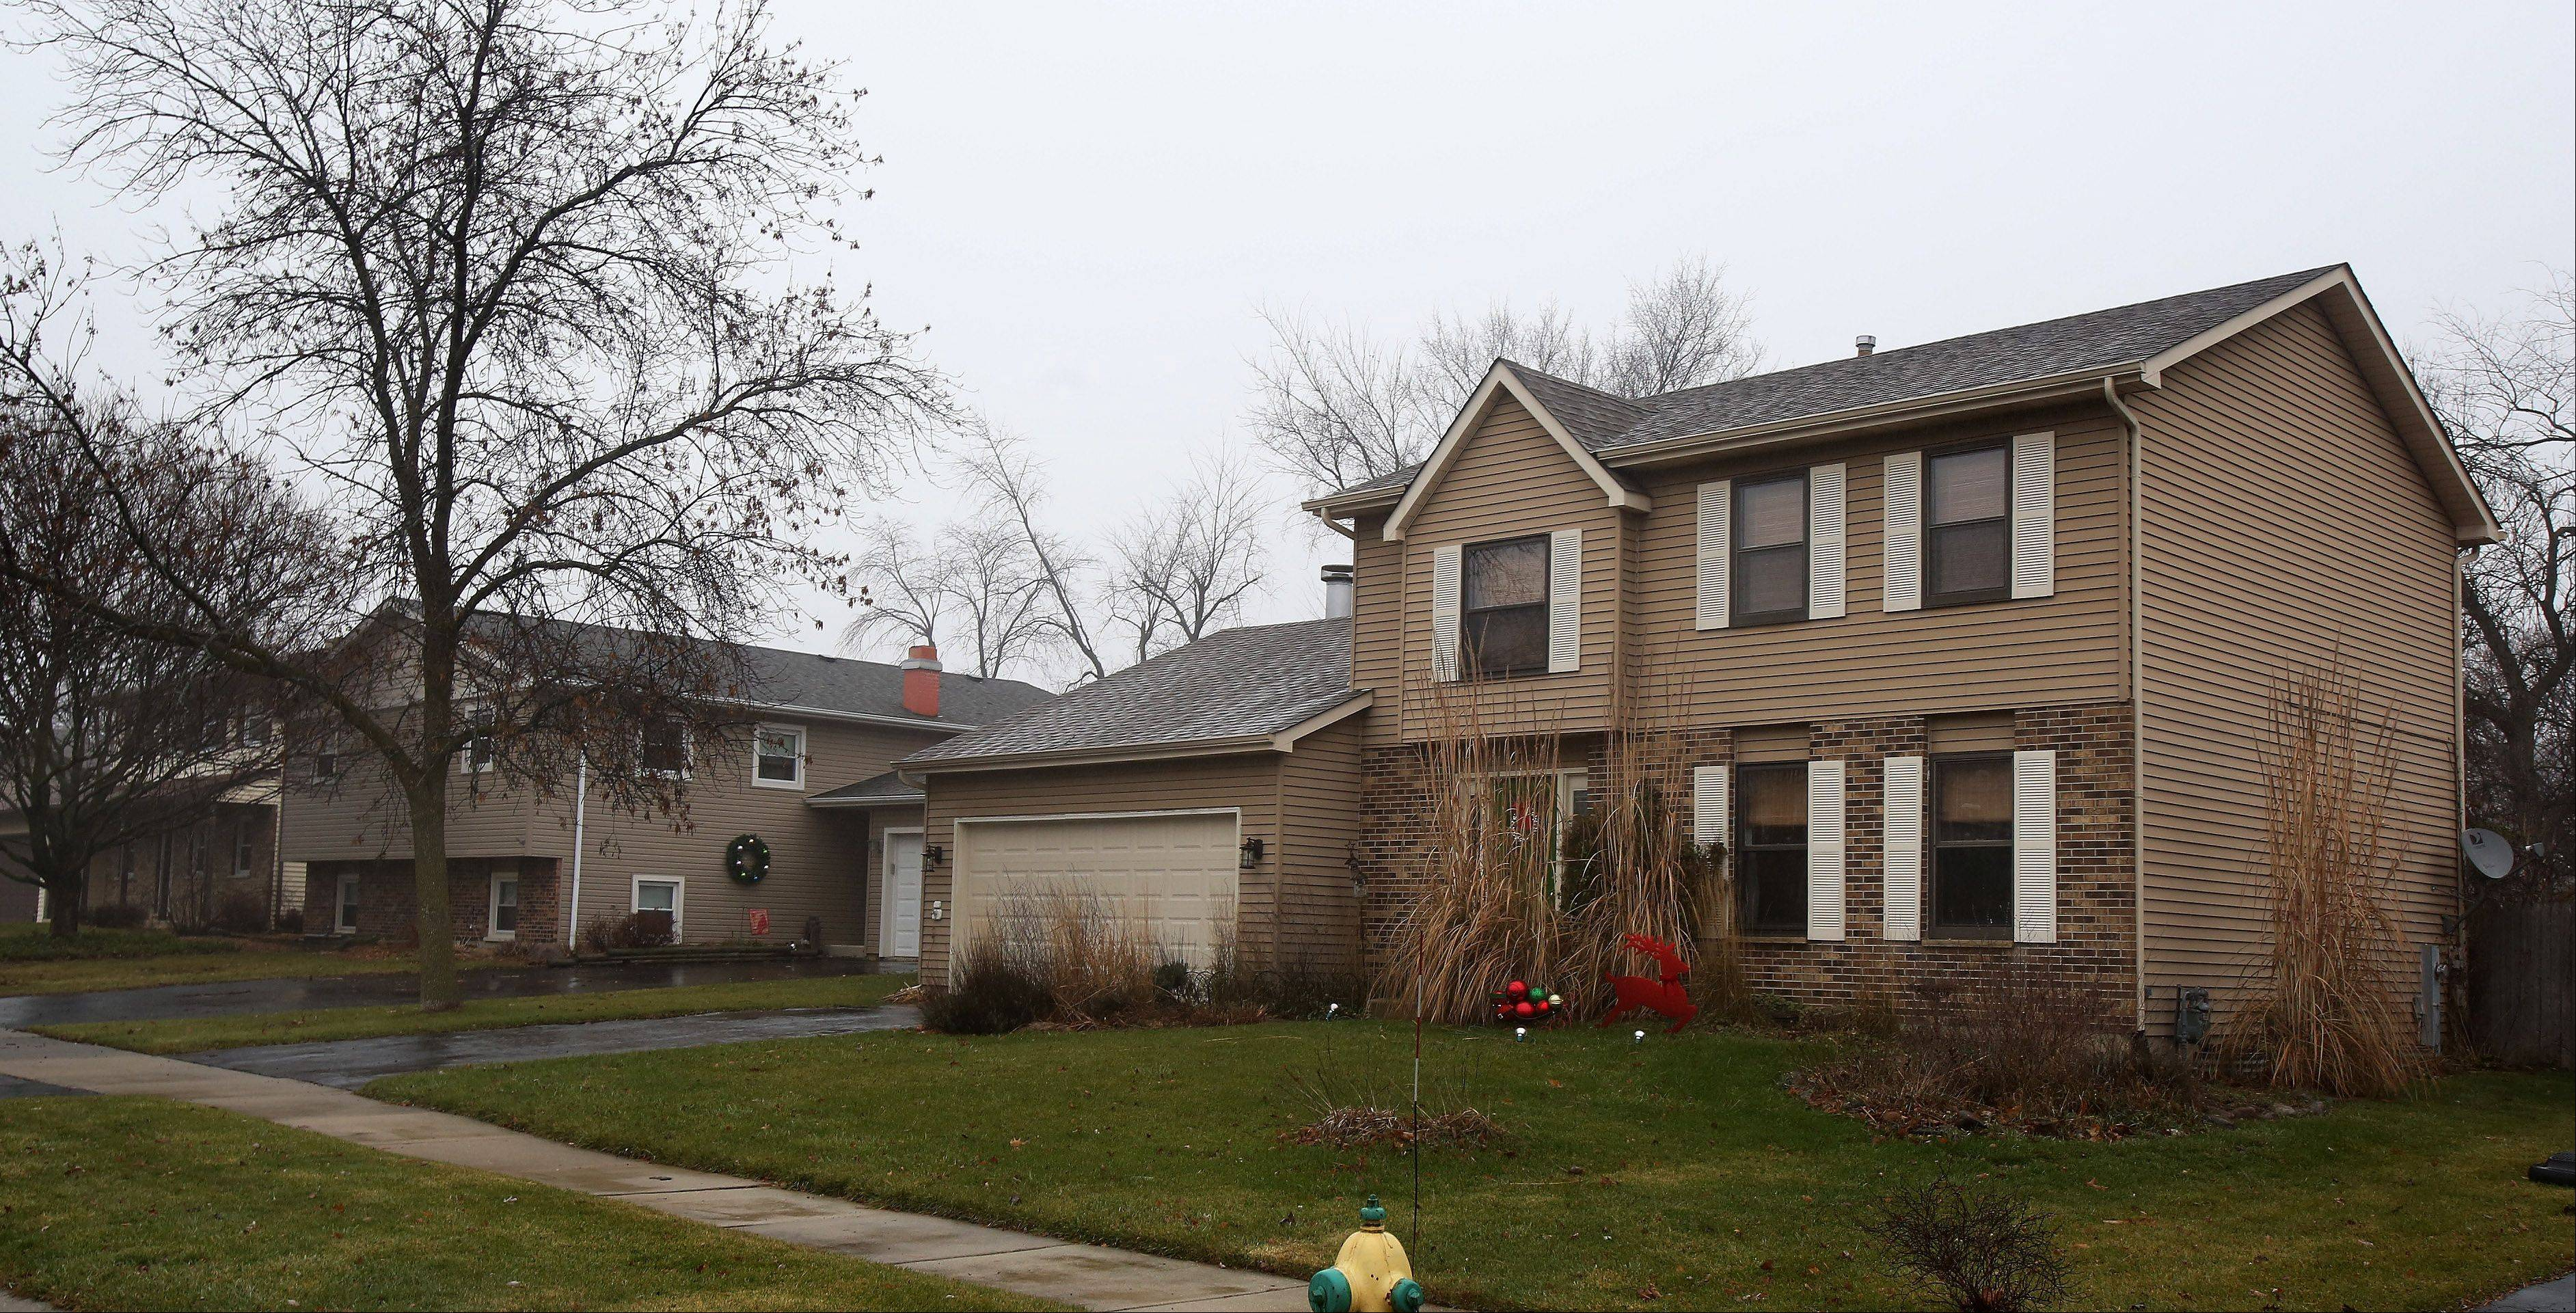 These homes on Burr Oak Drive in the Oak Crest neighborhood of Waukegan are typical of those found in the subdivision.